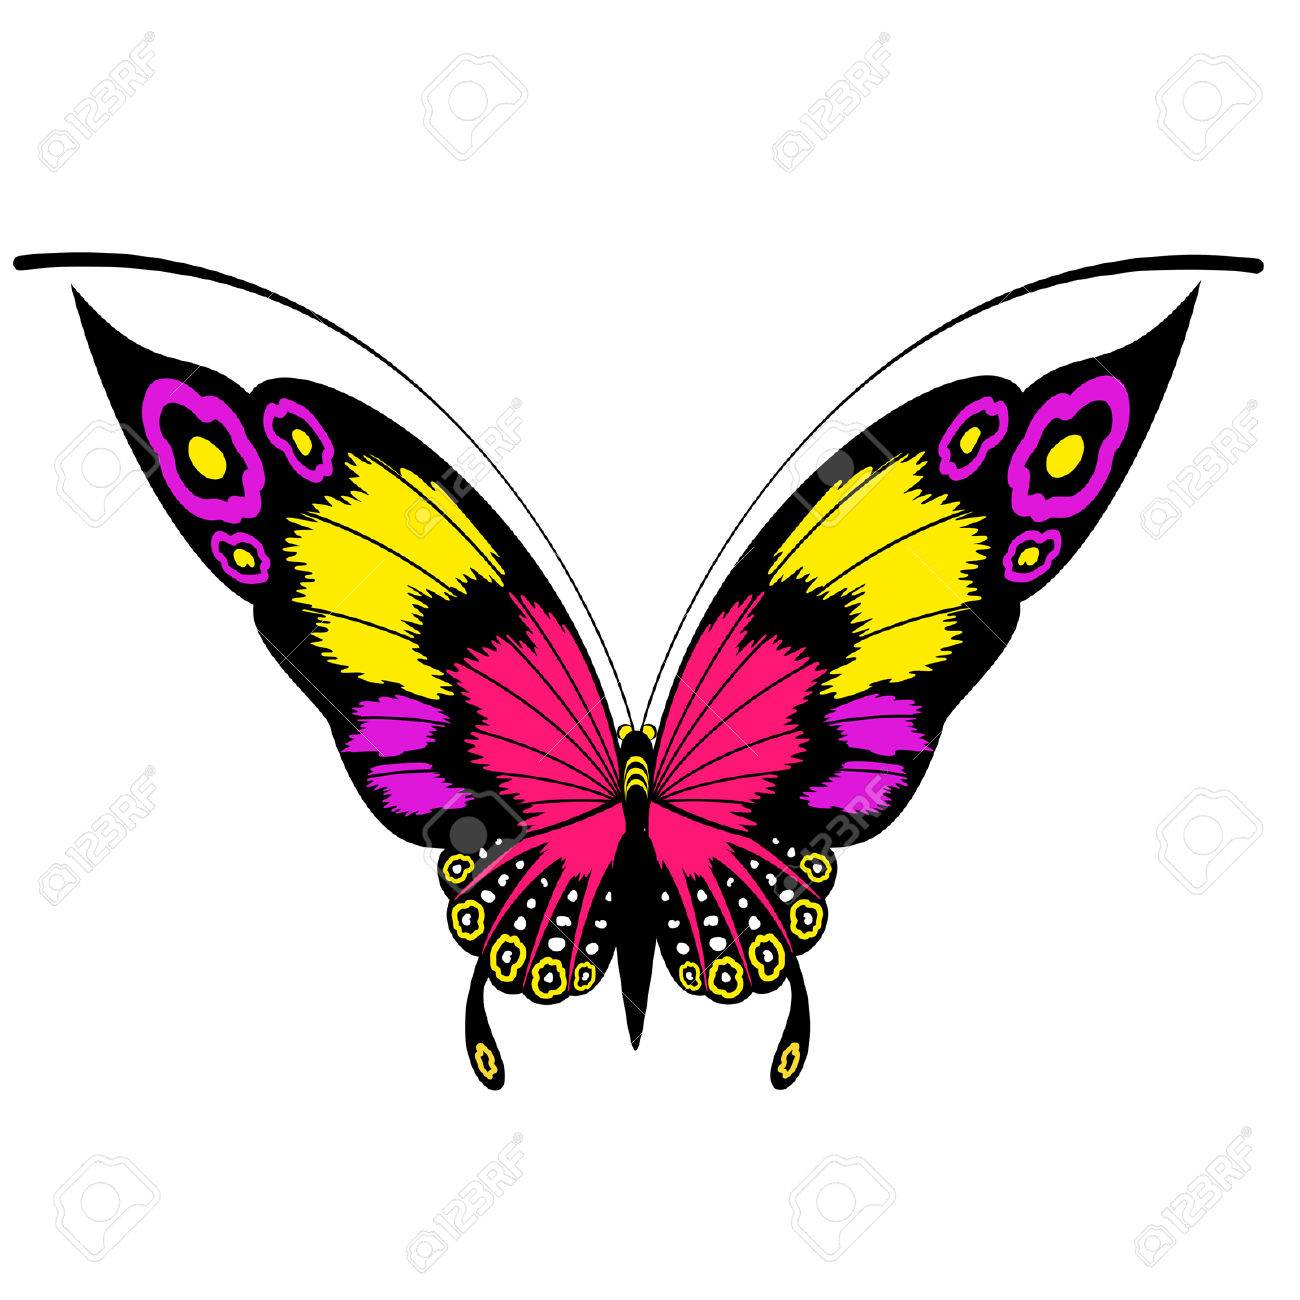 6 690 purple butterfly stock vector illustration and royalty free